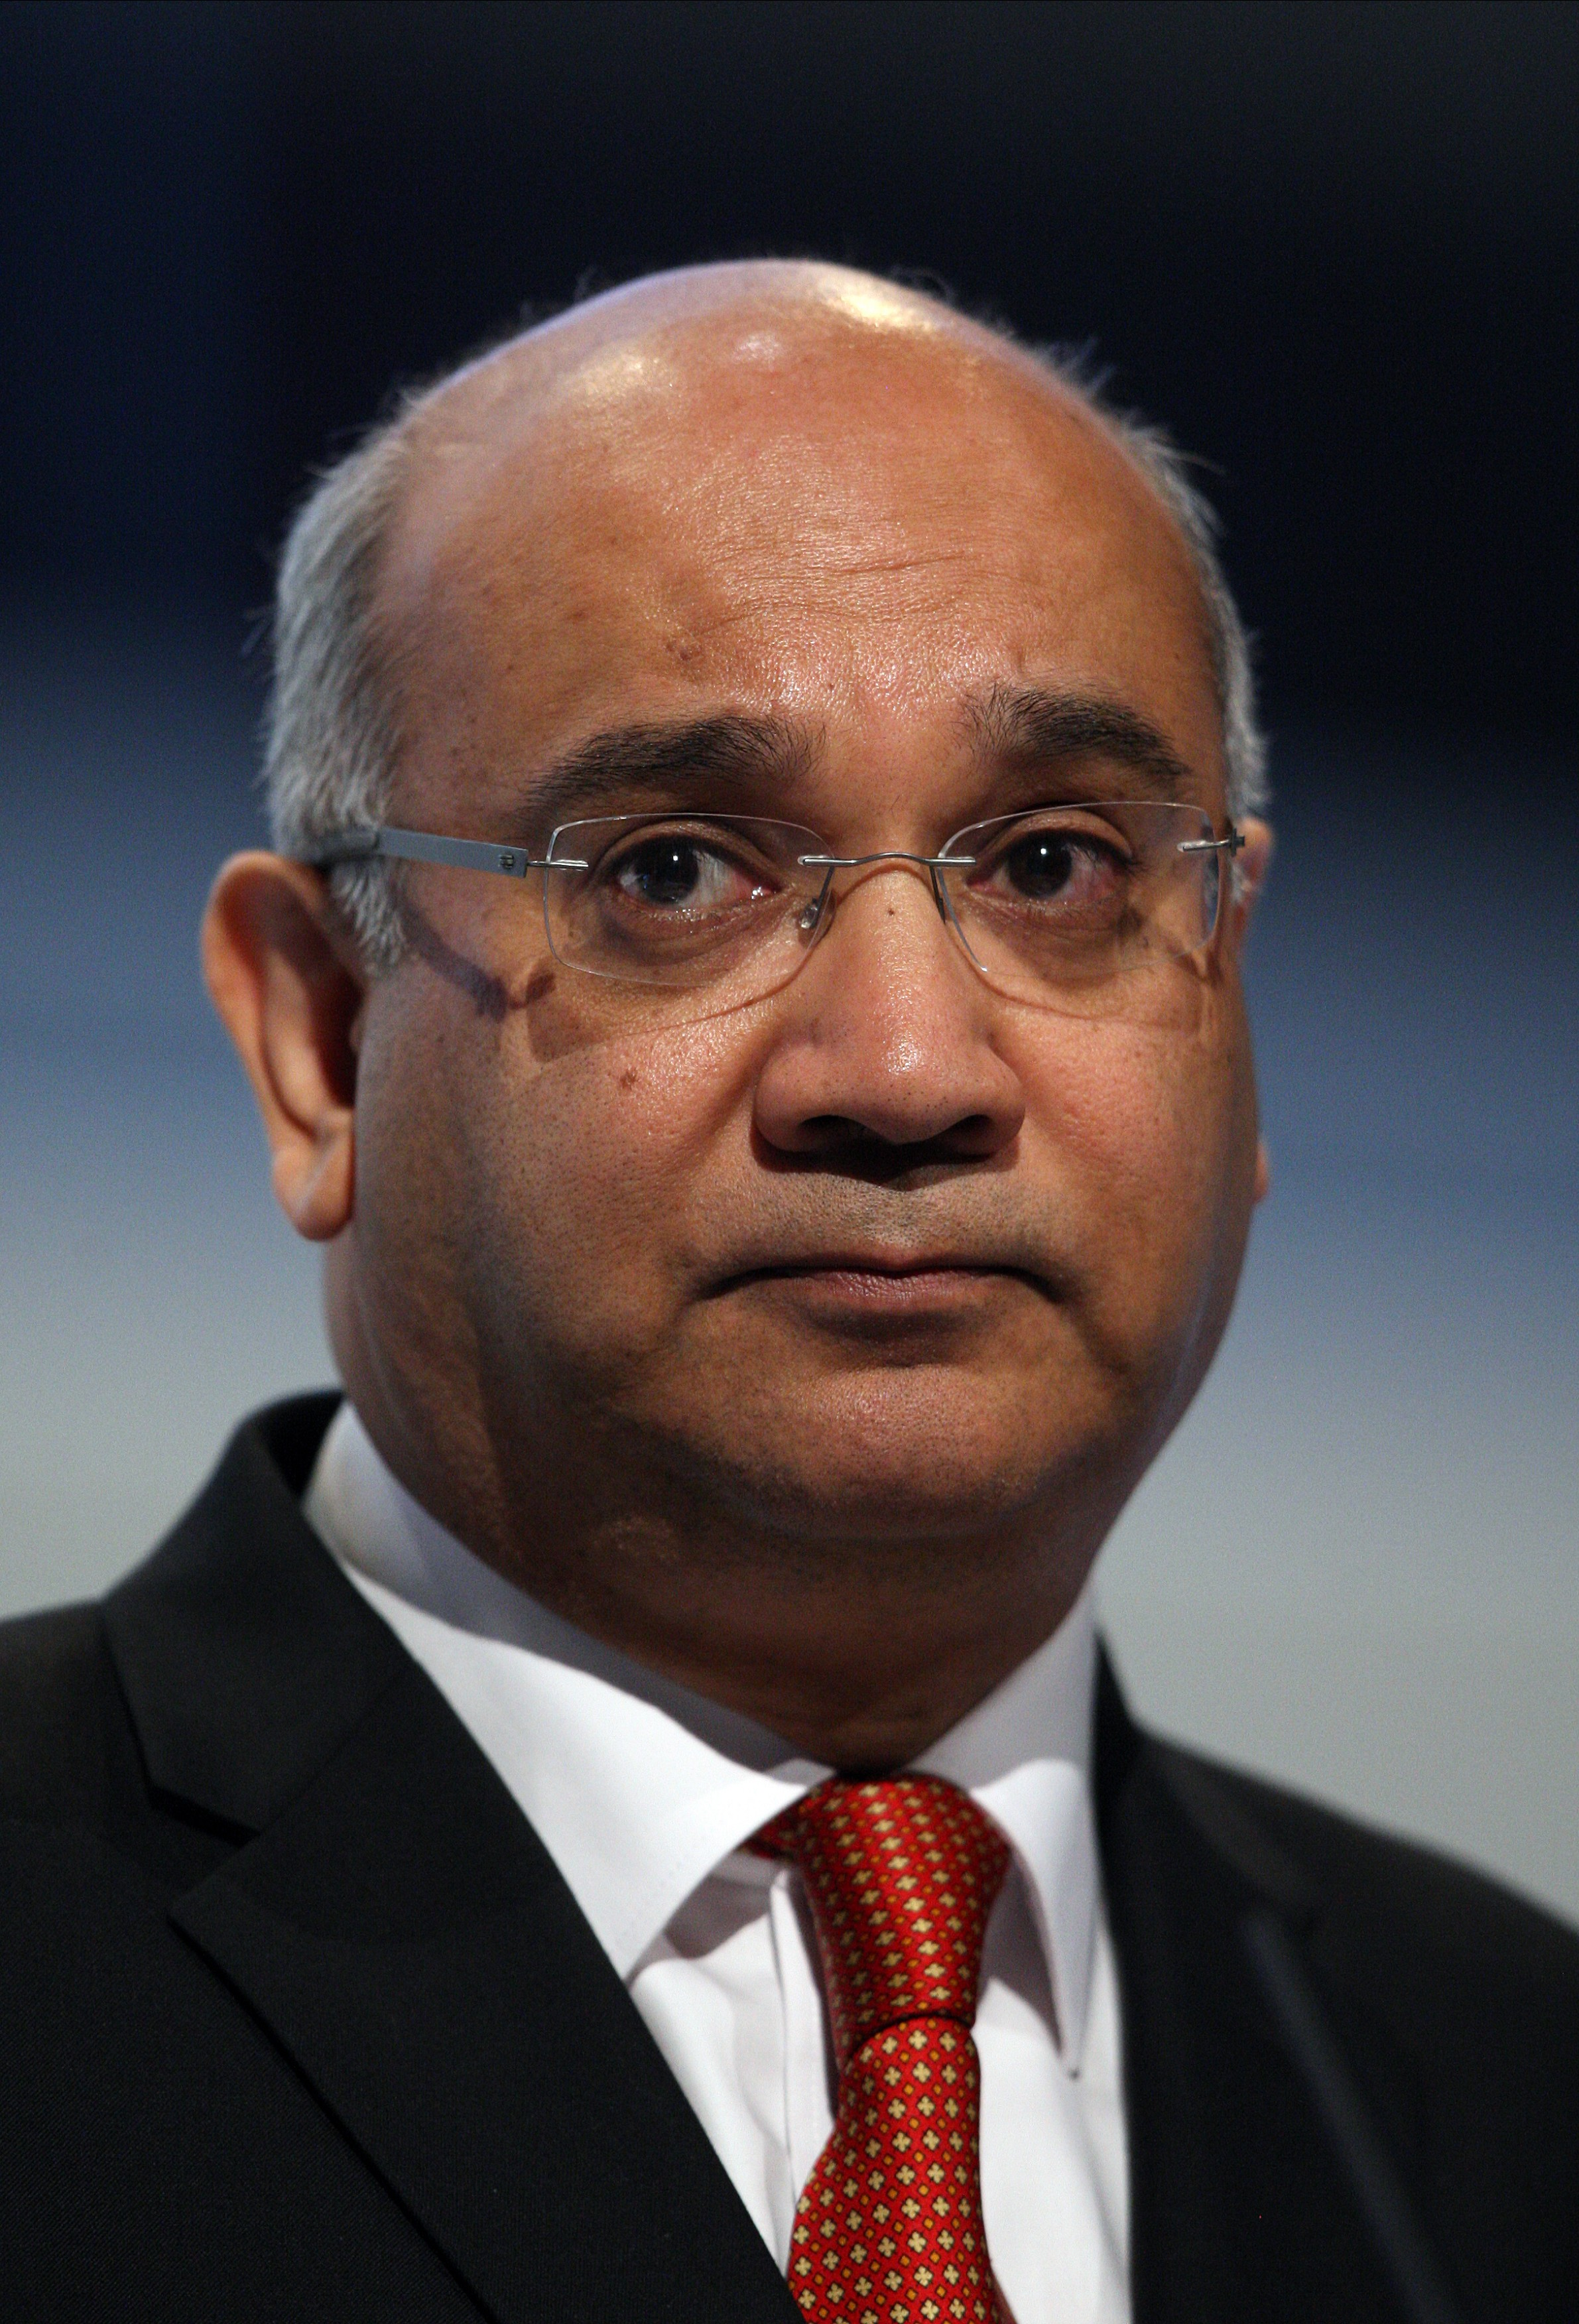 Undercover policing needs overhaul, say MPs